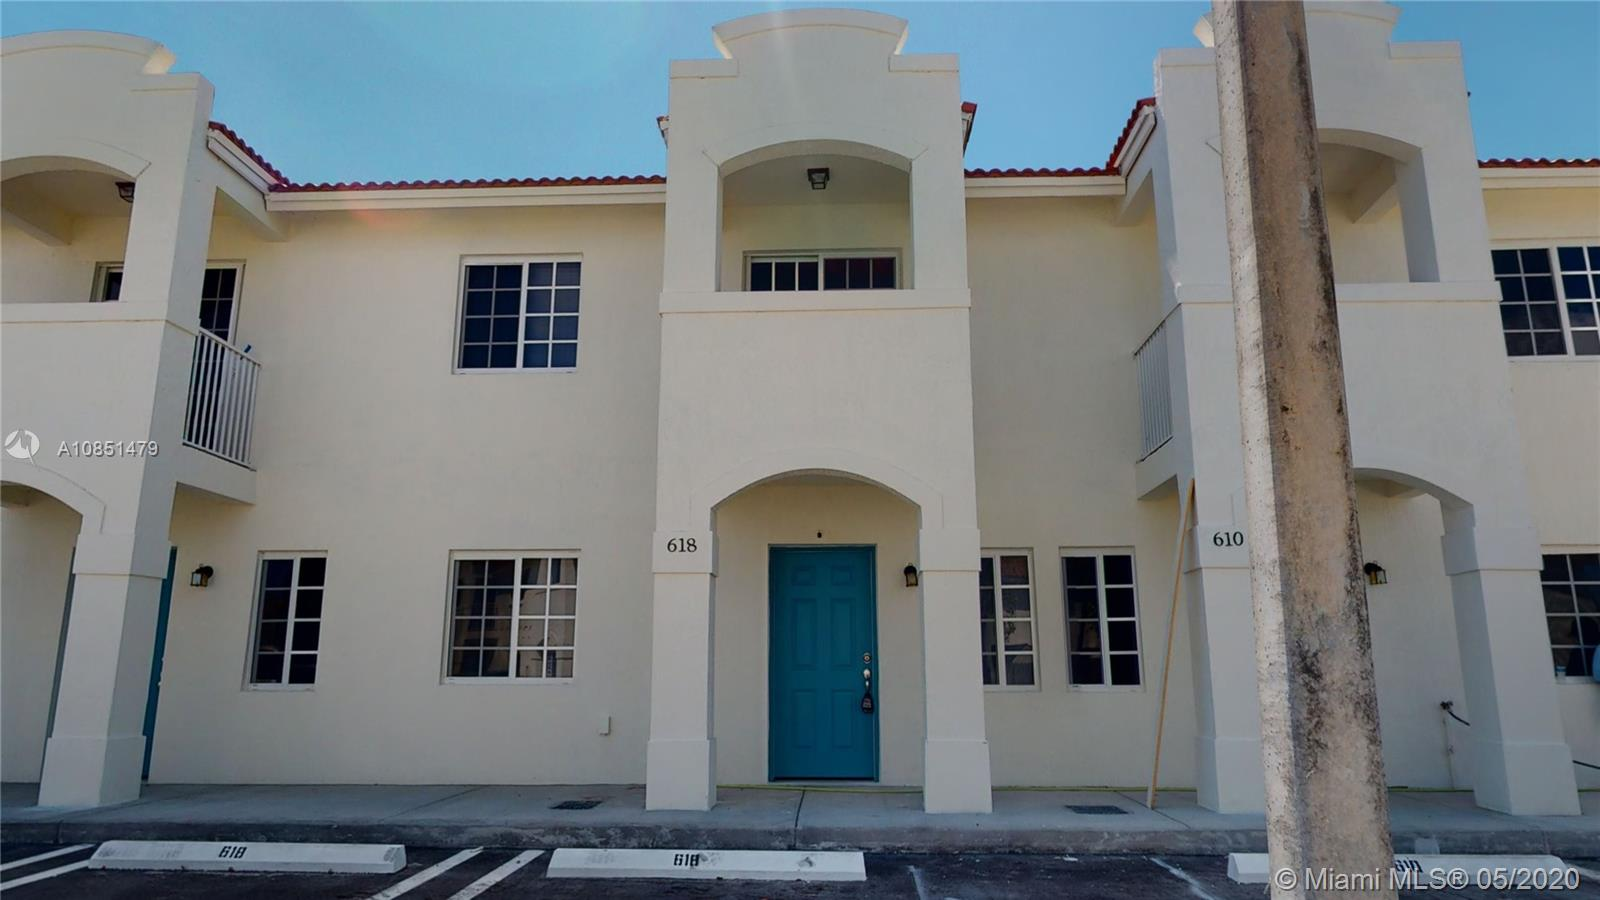 618 SW 2nd Pl Bldg 10 #60, Florida City, FL 33034 - Florida City, FL real estate listing